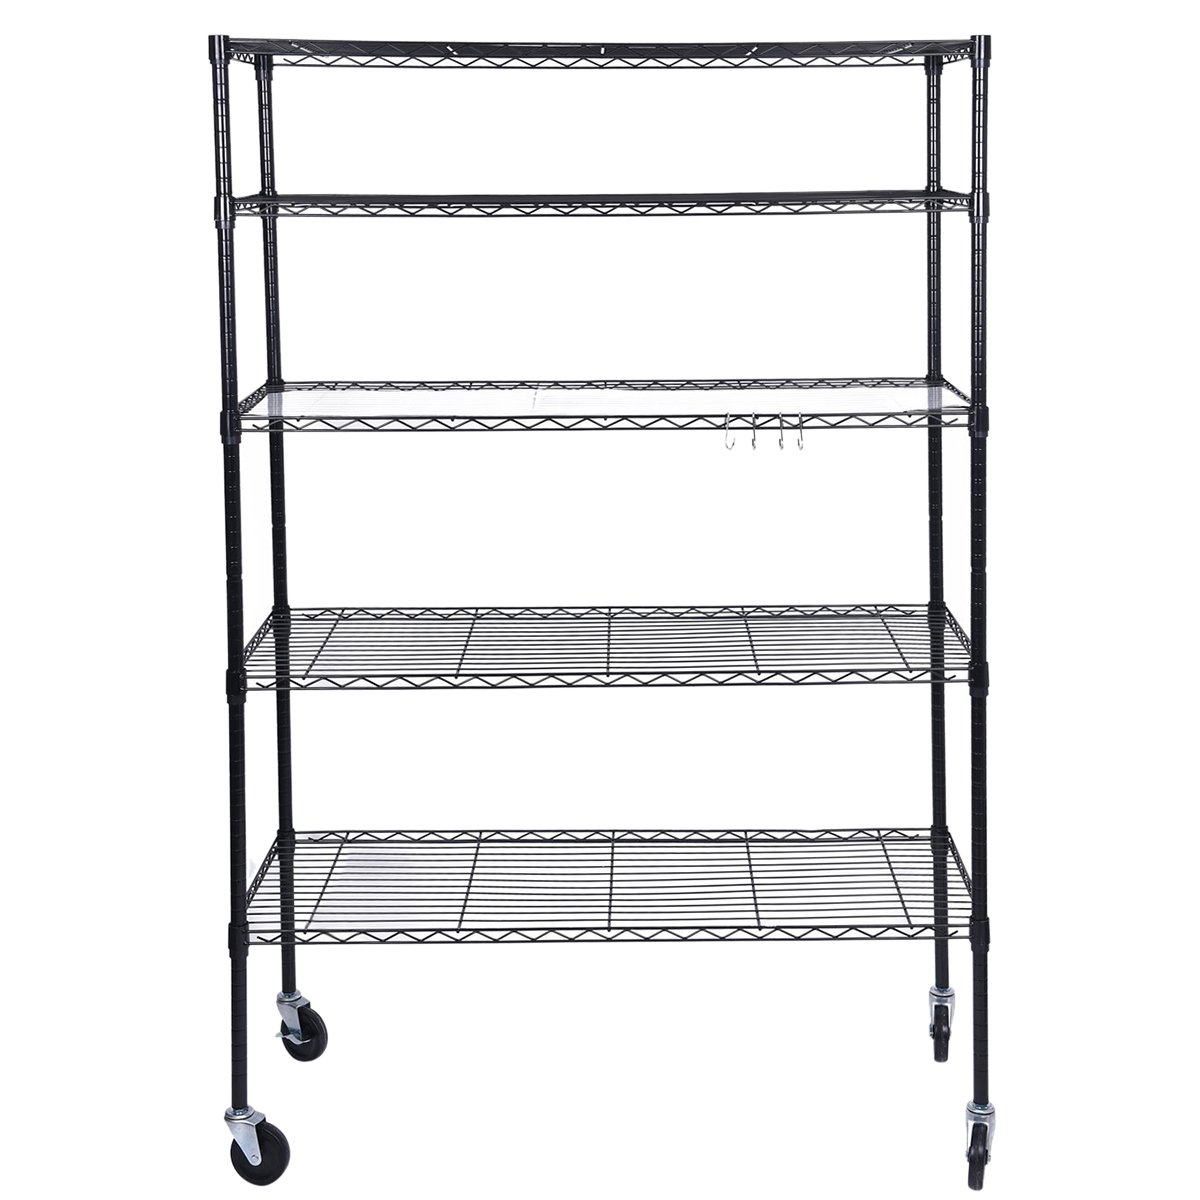 J.S. Hanger 5-Tier Heavy Duty Storage Shelf Adjustable Wire Shelving Rack, Thicken Tube and Industrial Wheels, Black by J.S. Hanger